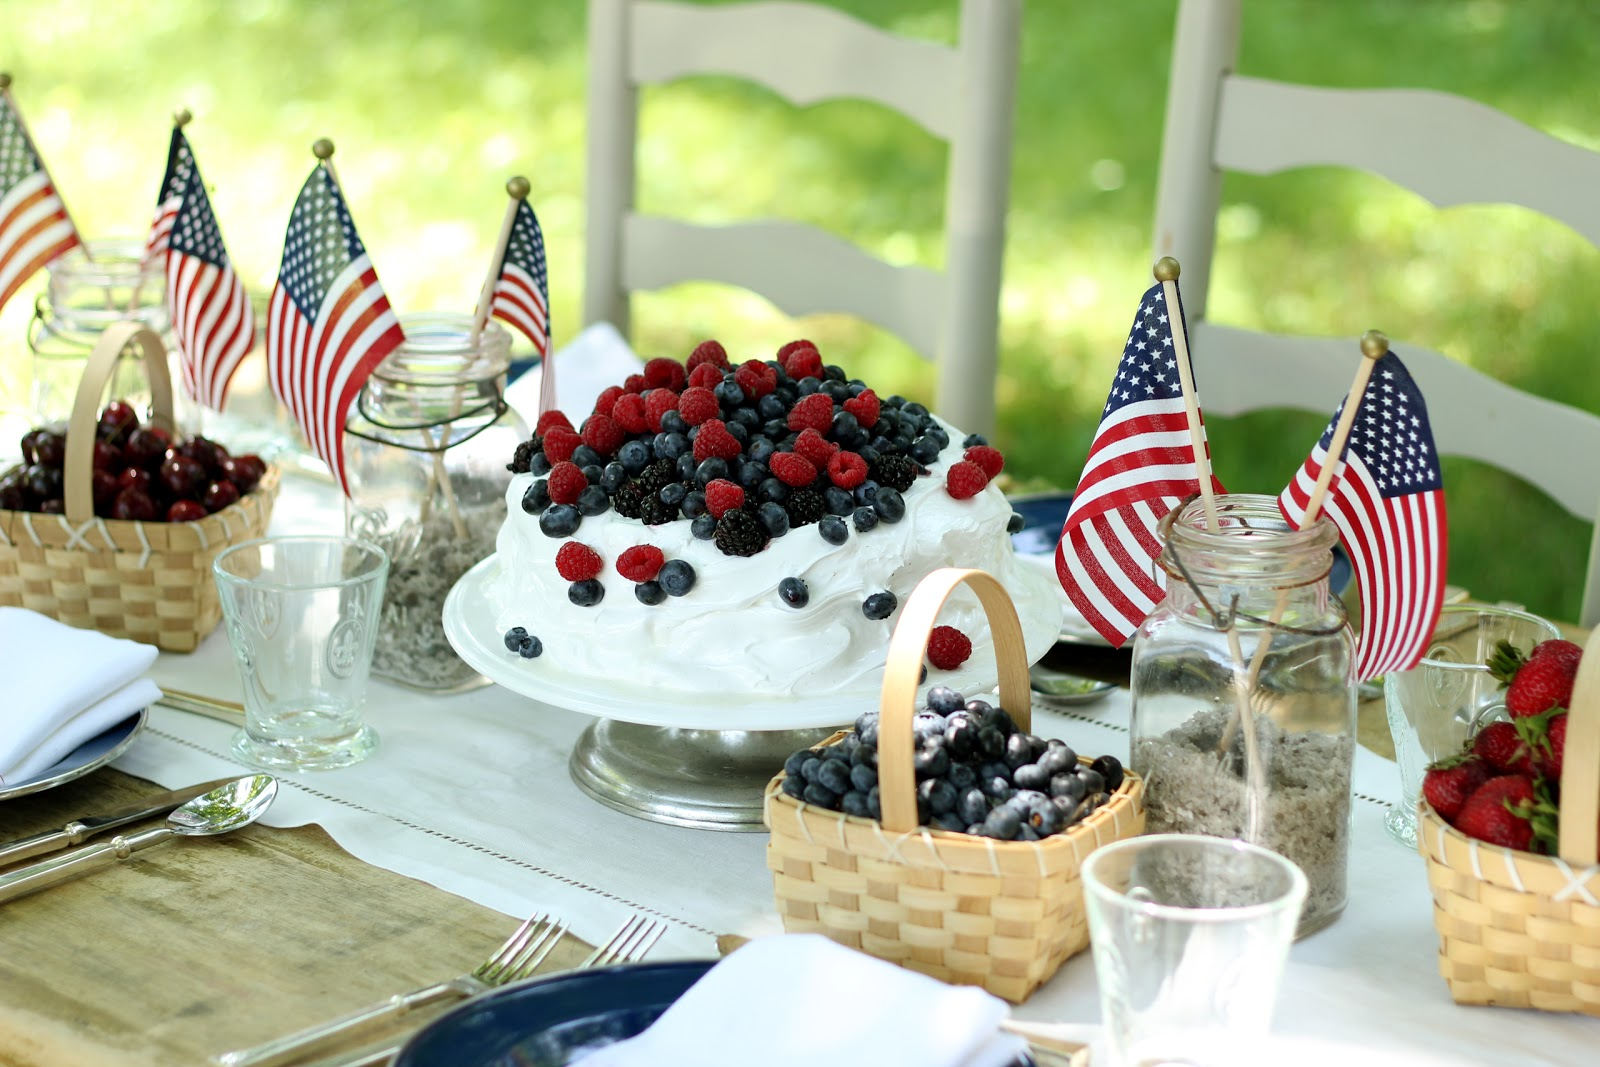 Jenny Steffens Hobick: My Favorite 4th of July Recipes & Table Settings